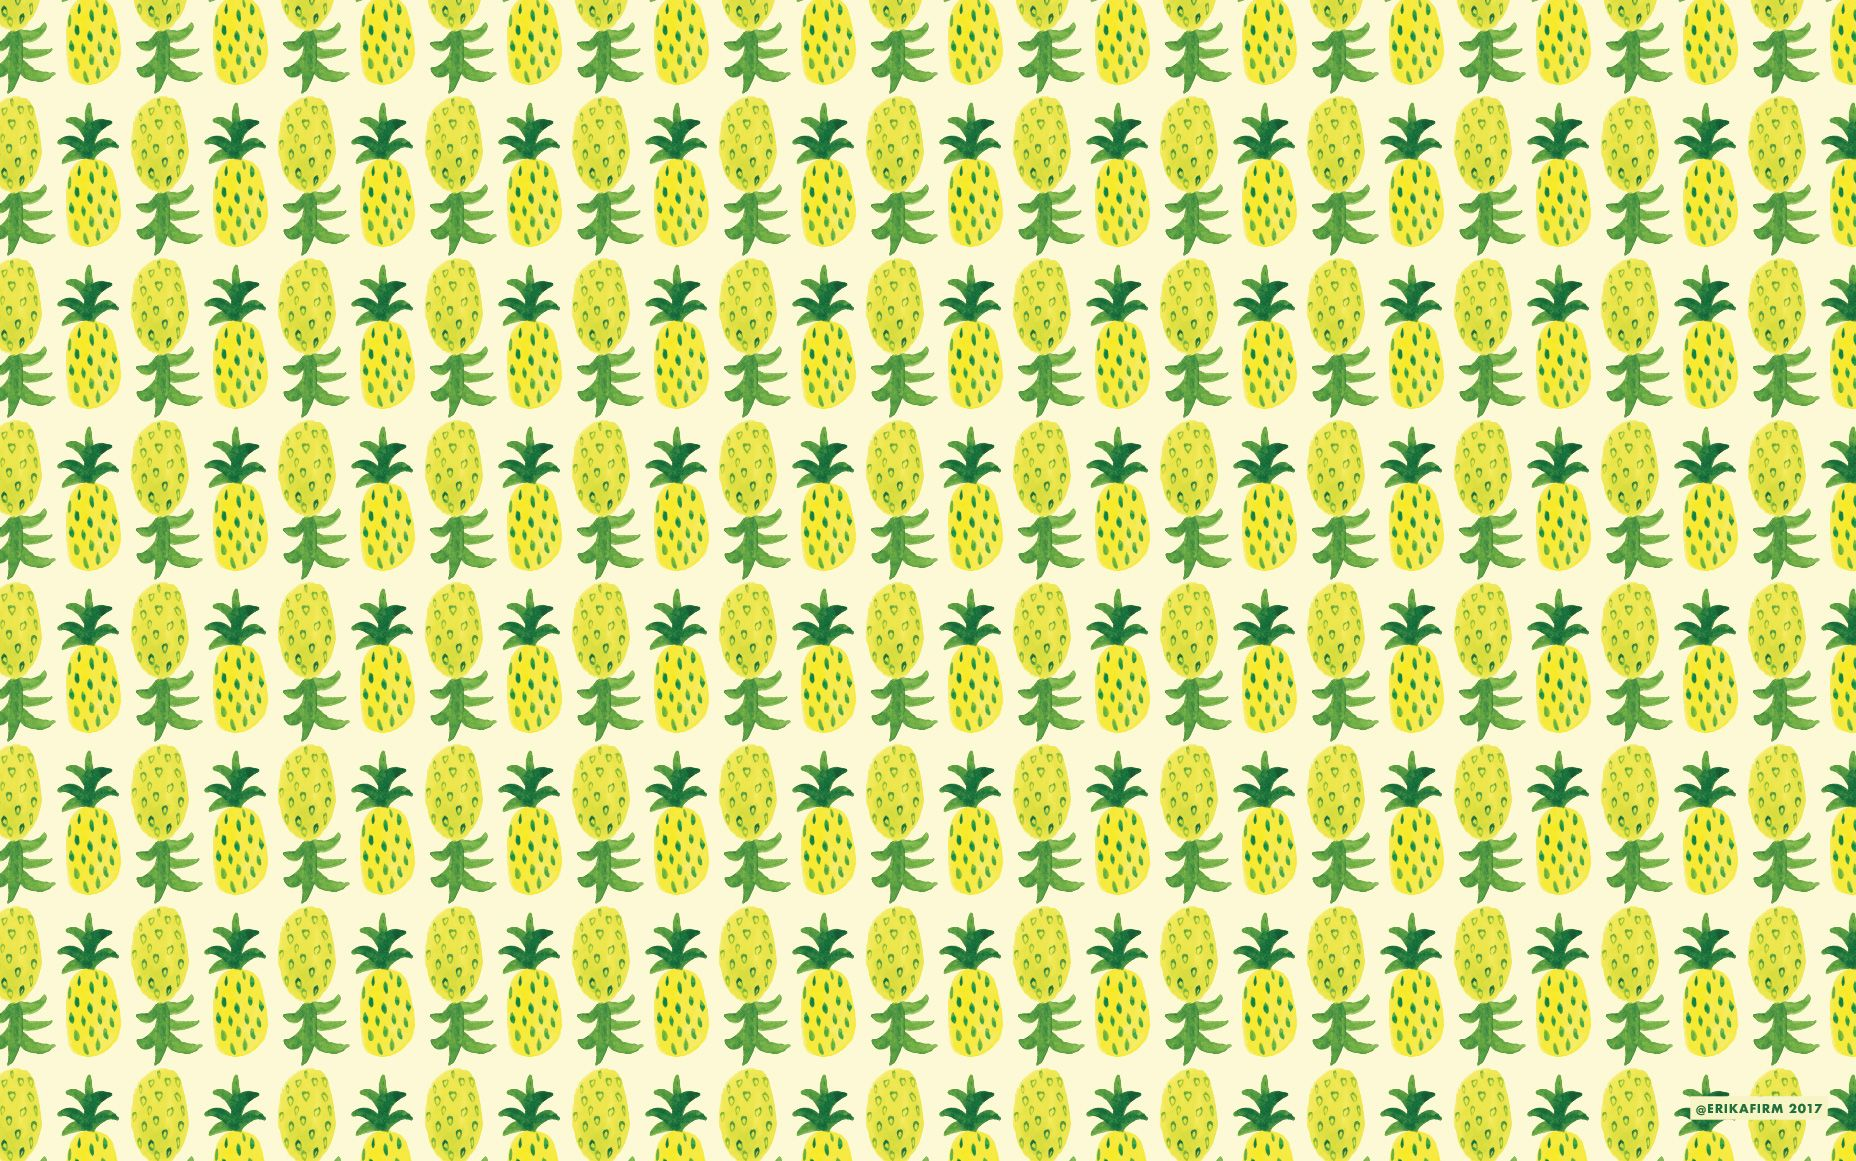 pineapple images free